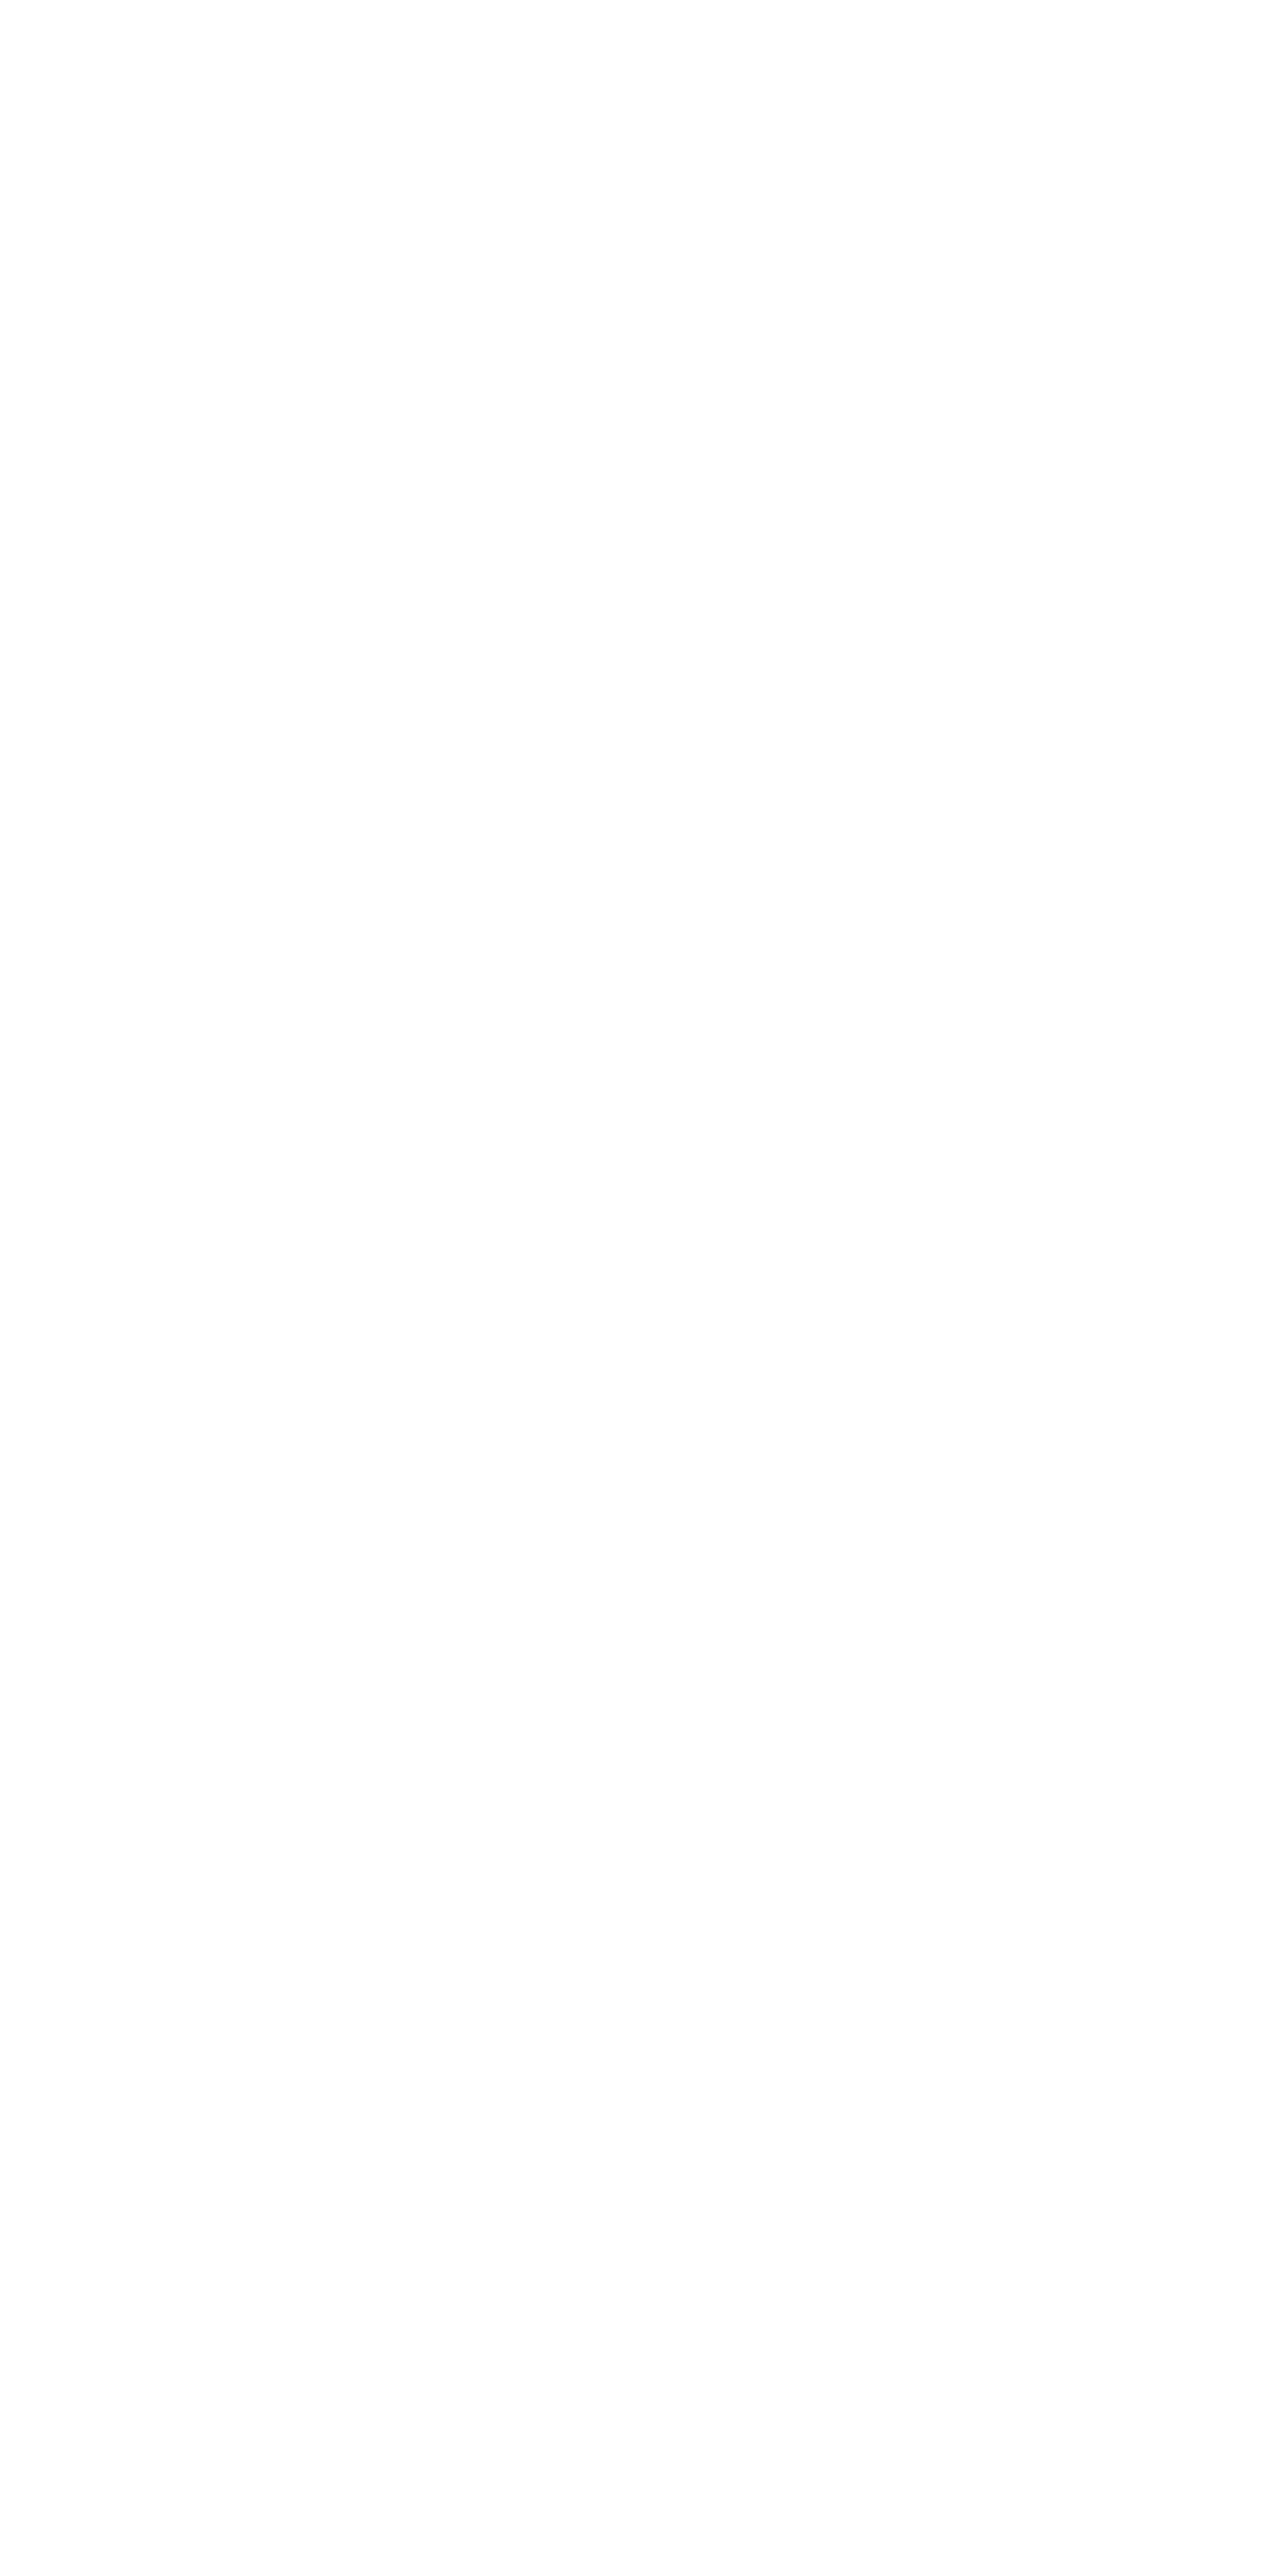 The Lutheran Church of Arcata